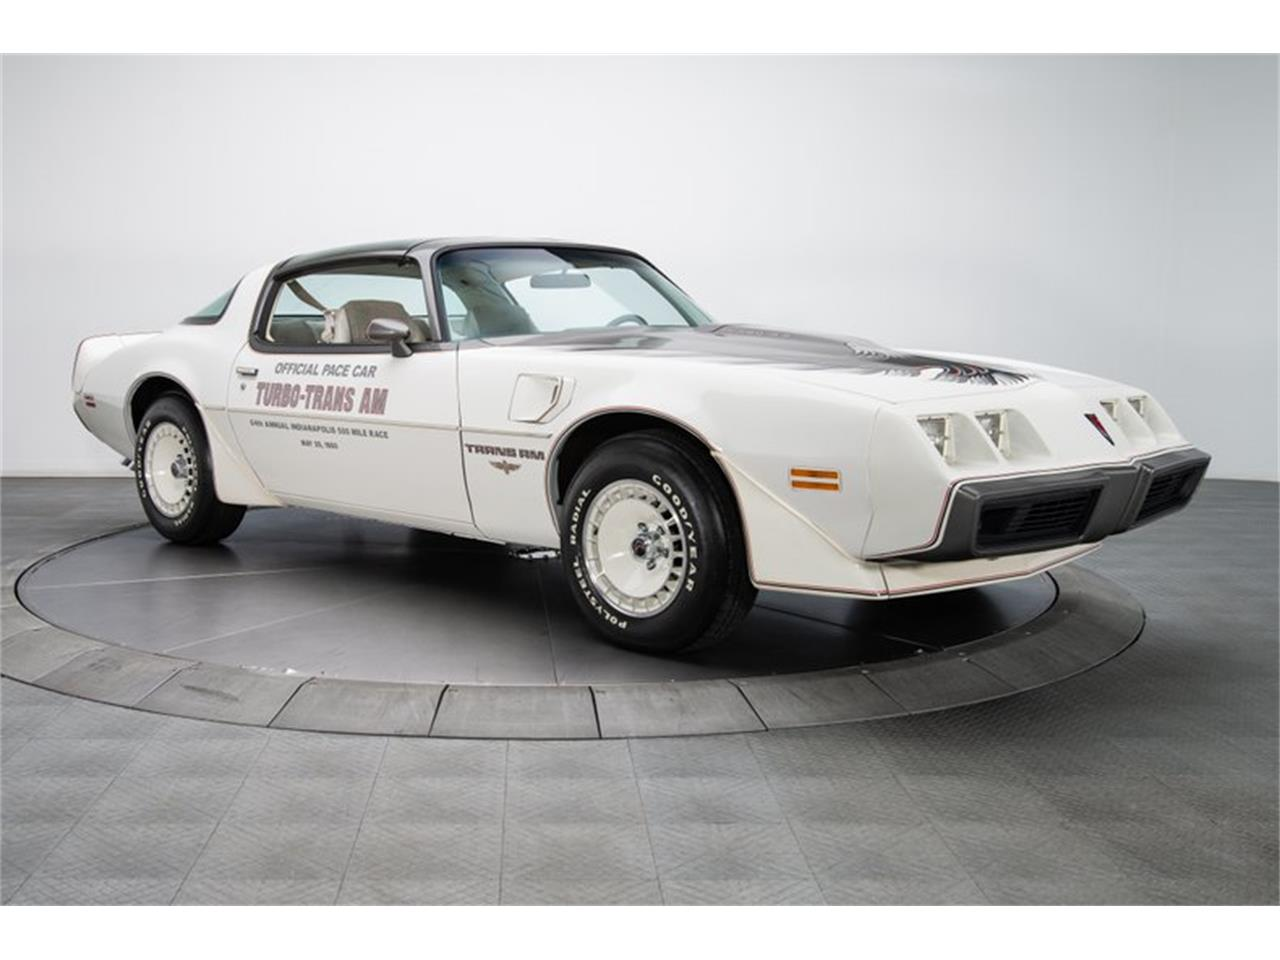 1980 Pontiac Firebird Trans Am Turbo Indy Pace Car Edition for sale in Charlotte, NC – photo 3